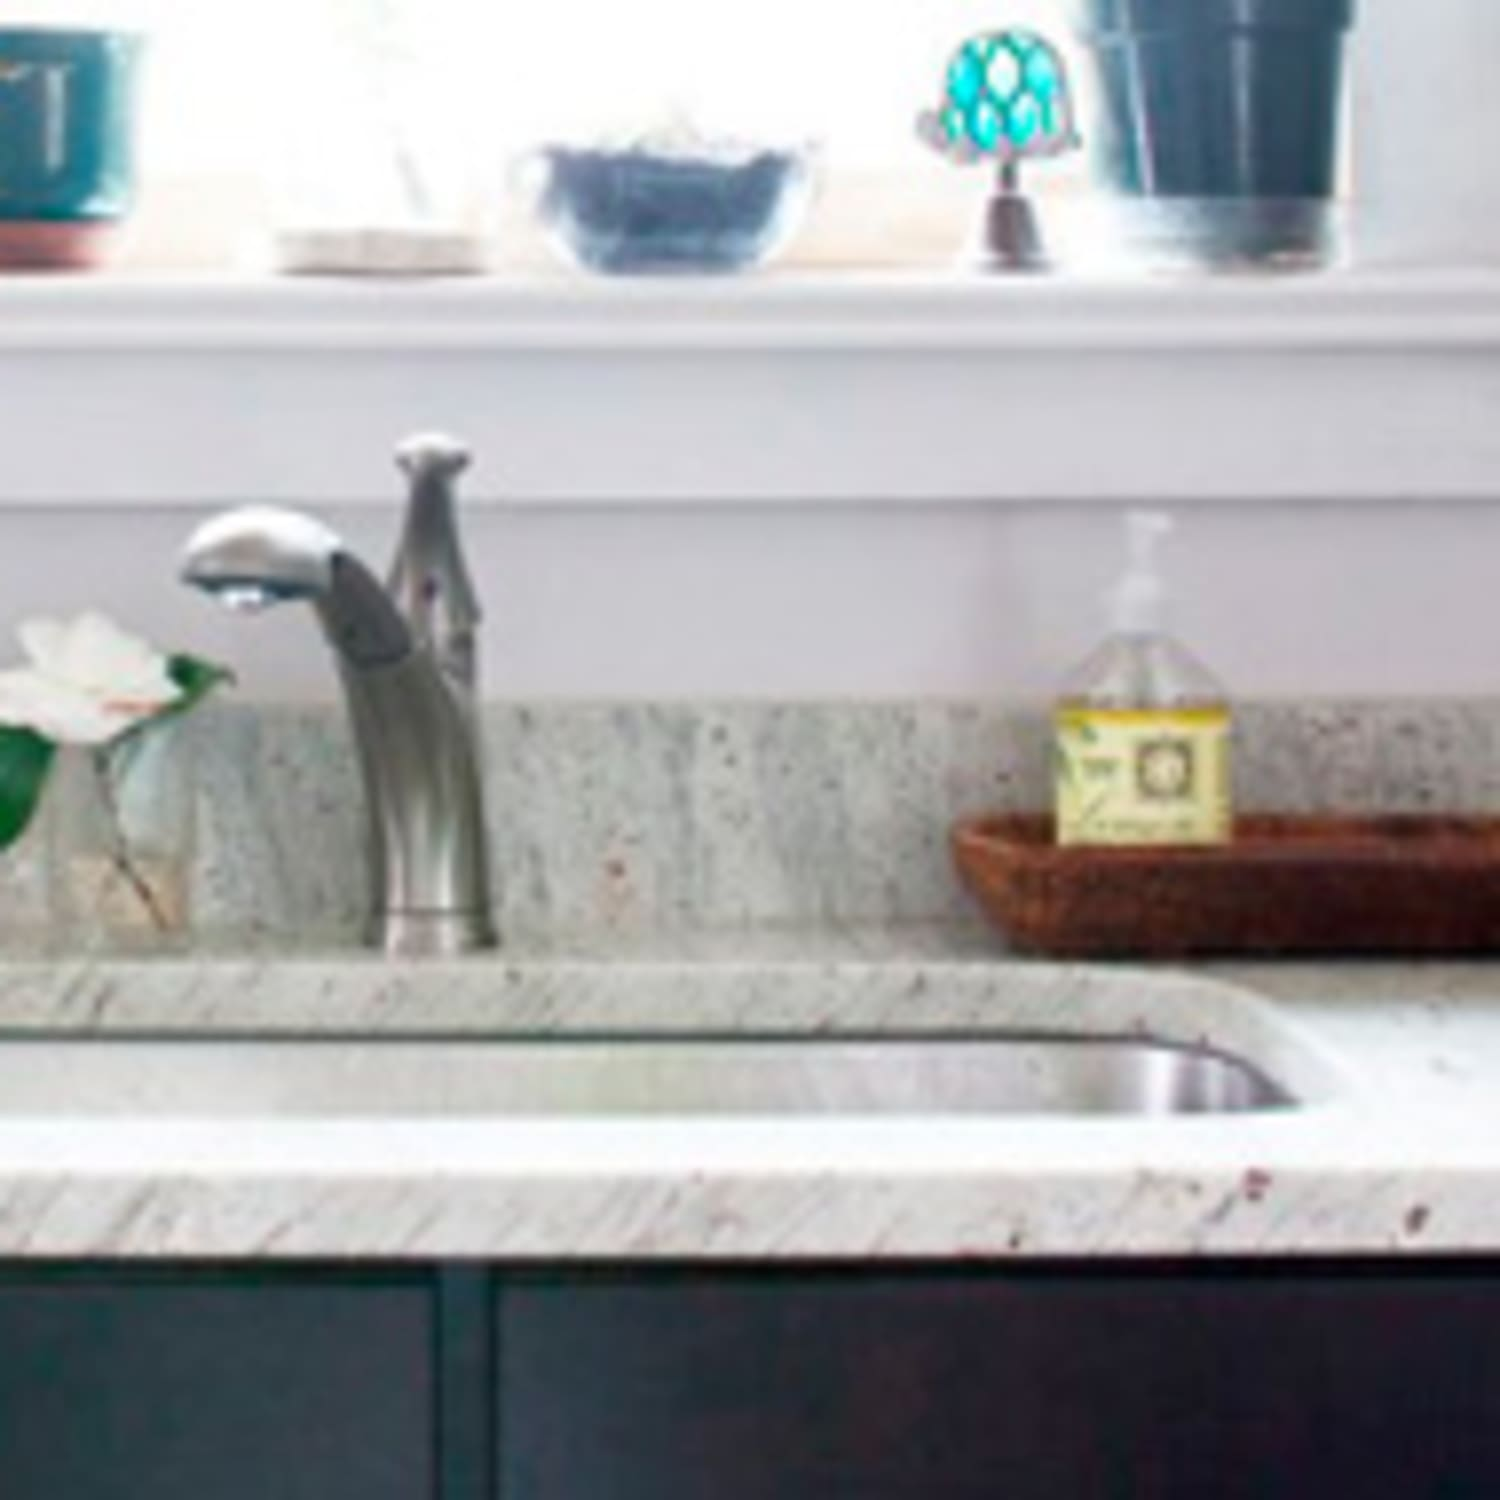 Whatu0027s The Best Way To Clean My Stainless Steel Sink?